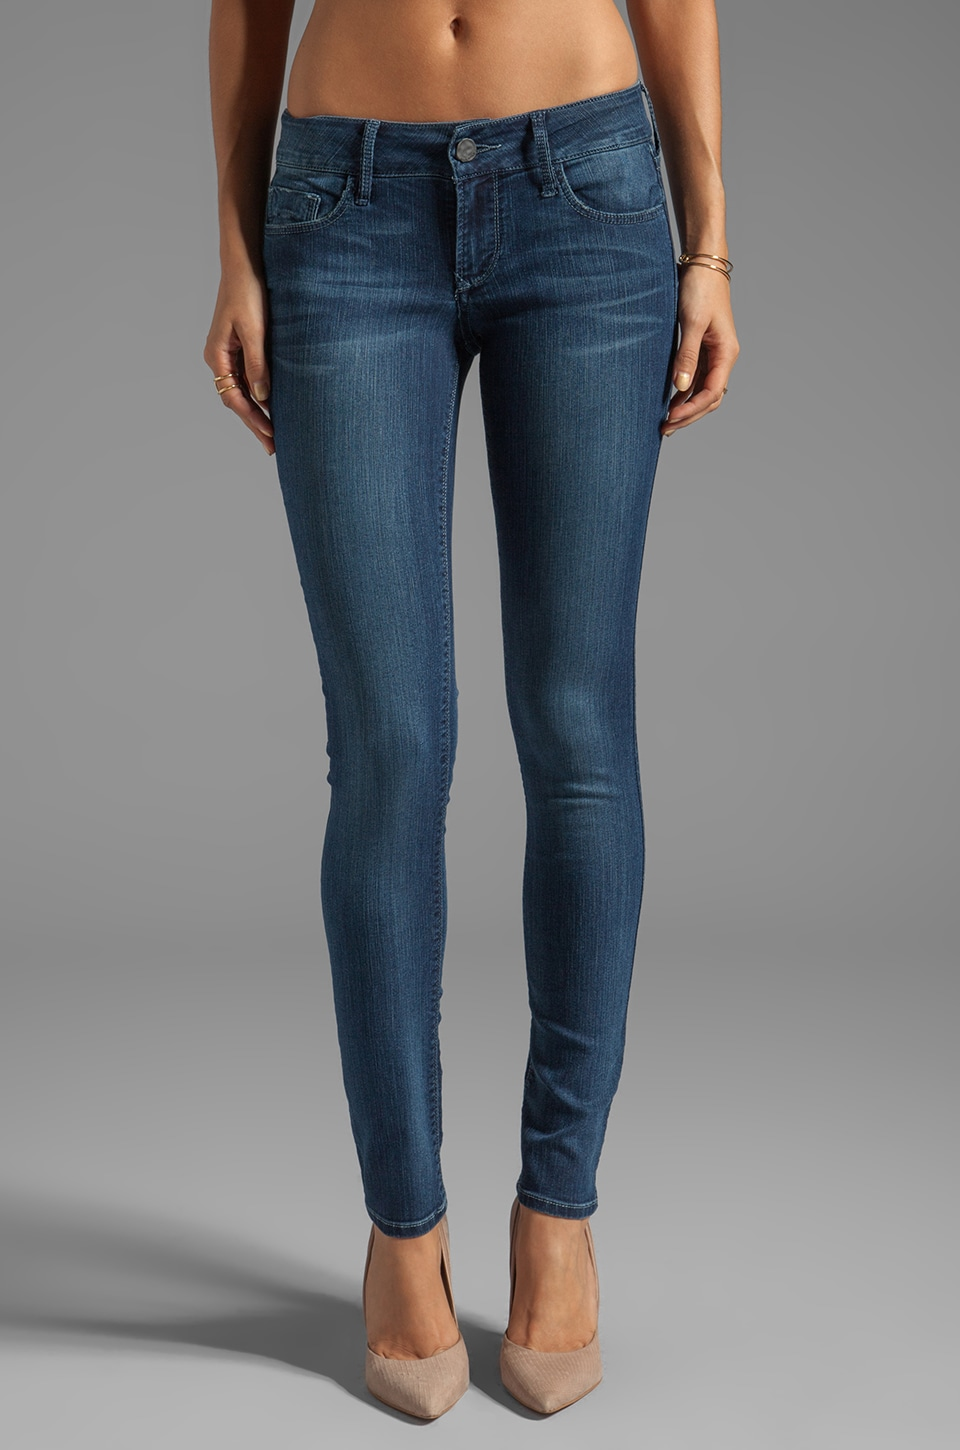 Black Orchid Skinny in Blue Empress